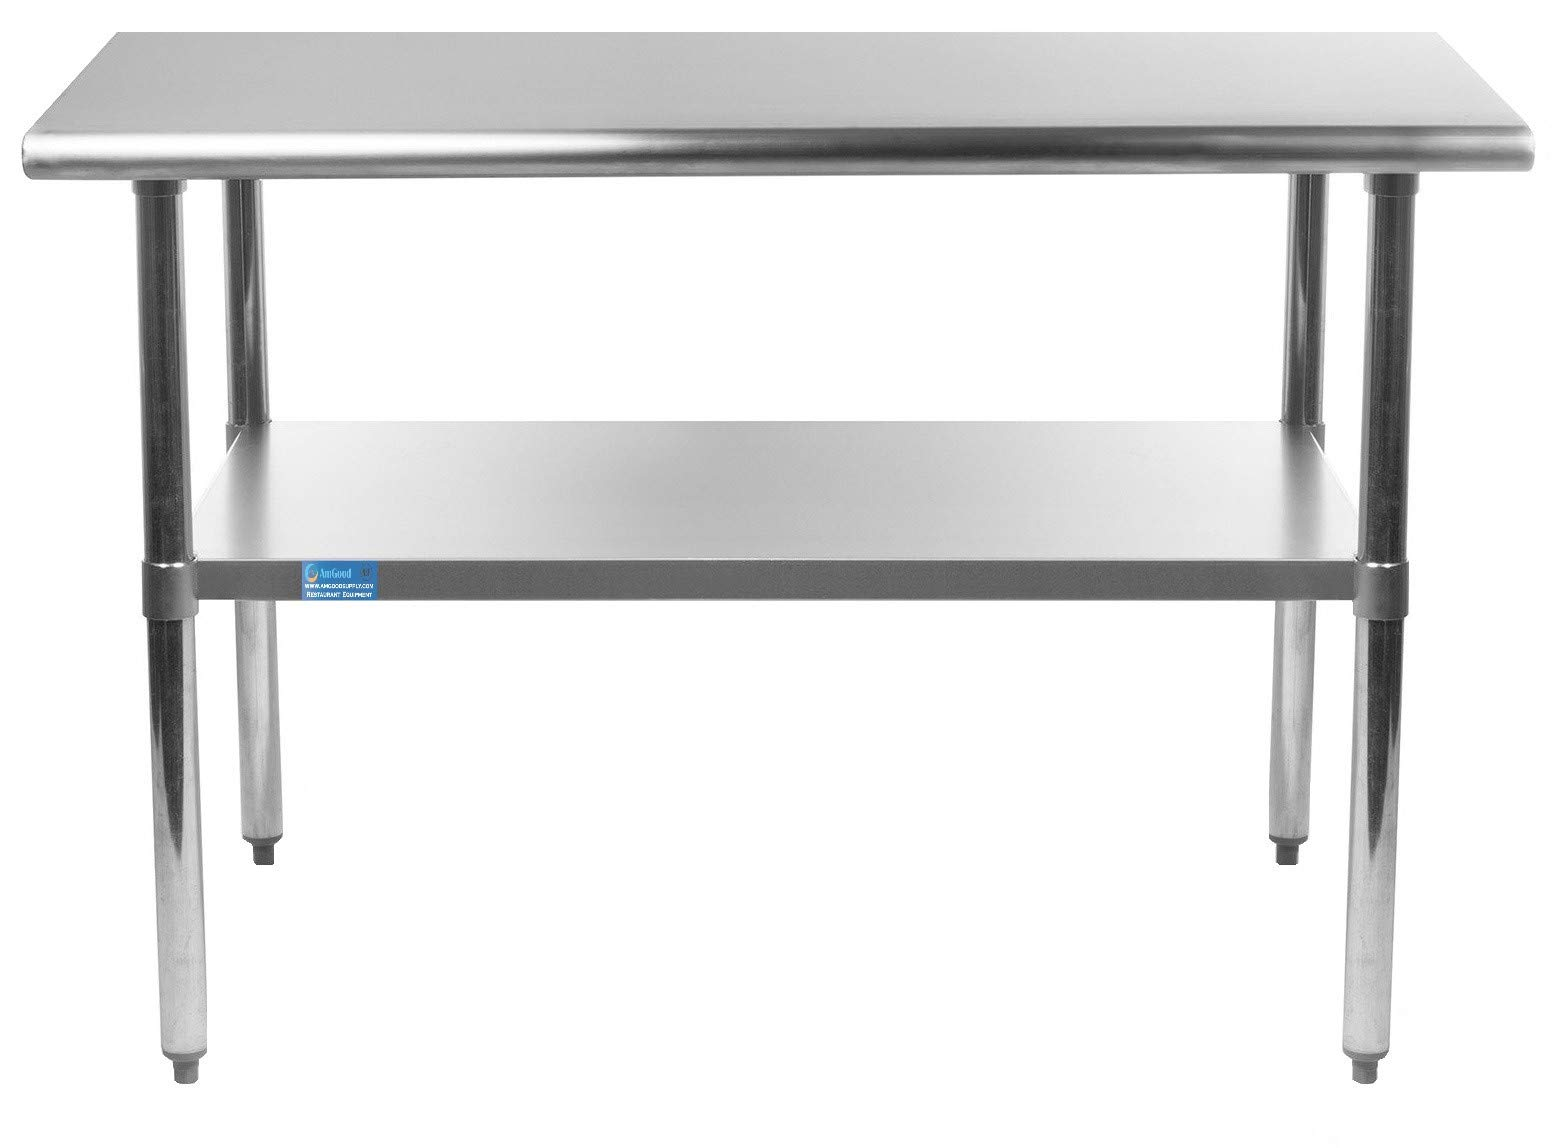 18'' X 30'' Stainless Steel Work Table with Undershelf | NSF Certified | Laundry Garage Utility Bench | Kitchen Island Food Prep